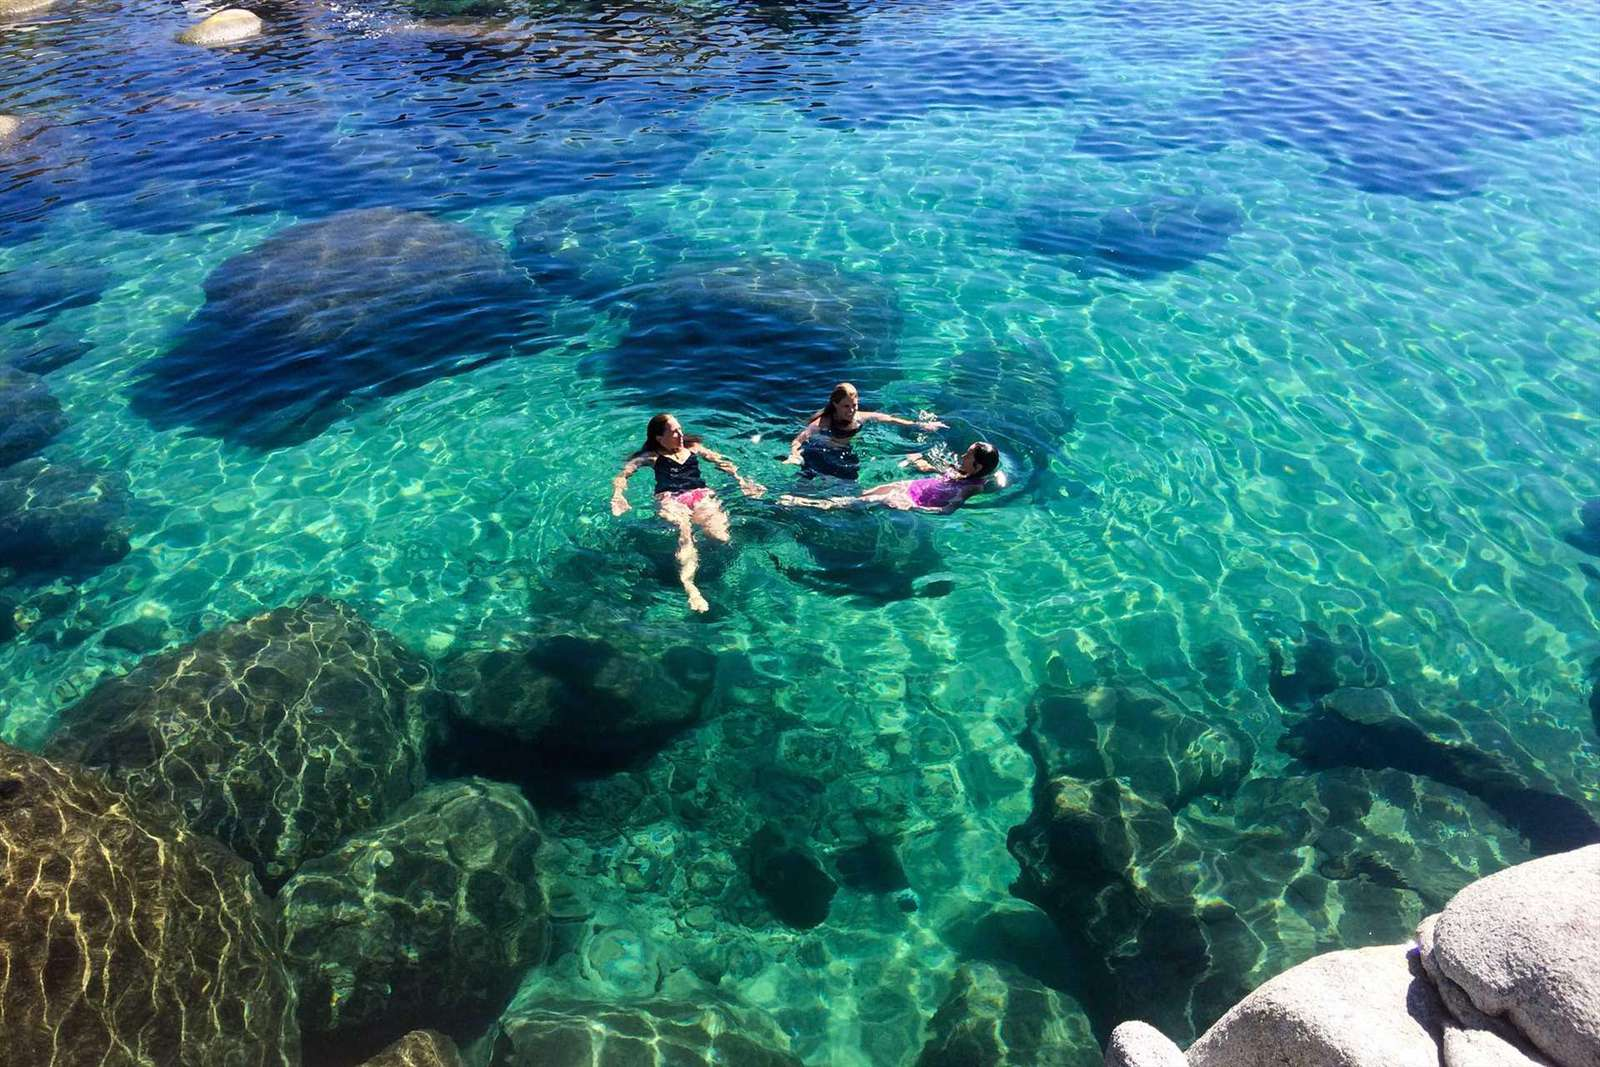 Swimming in Lake Tahoe